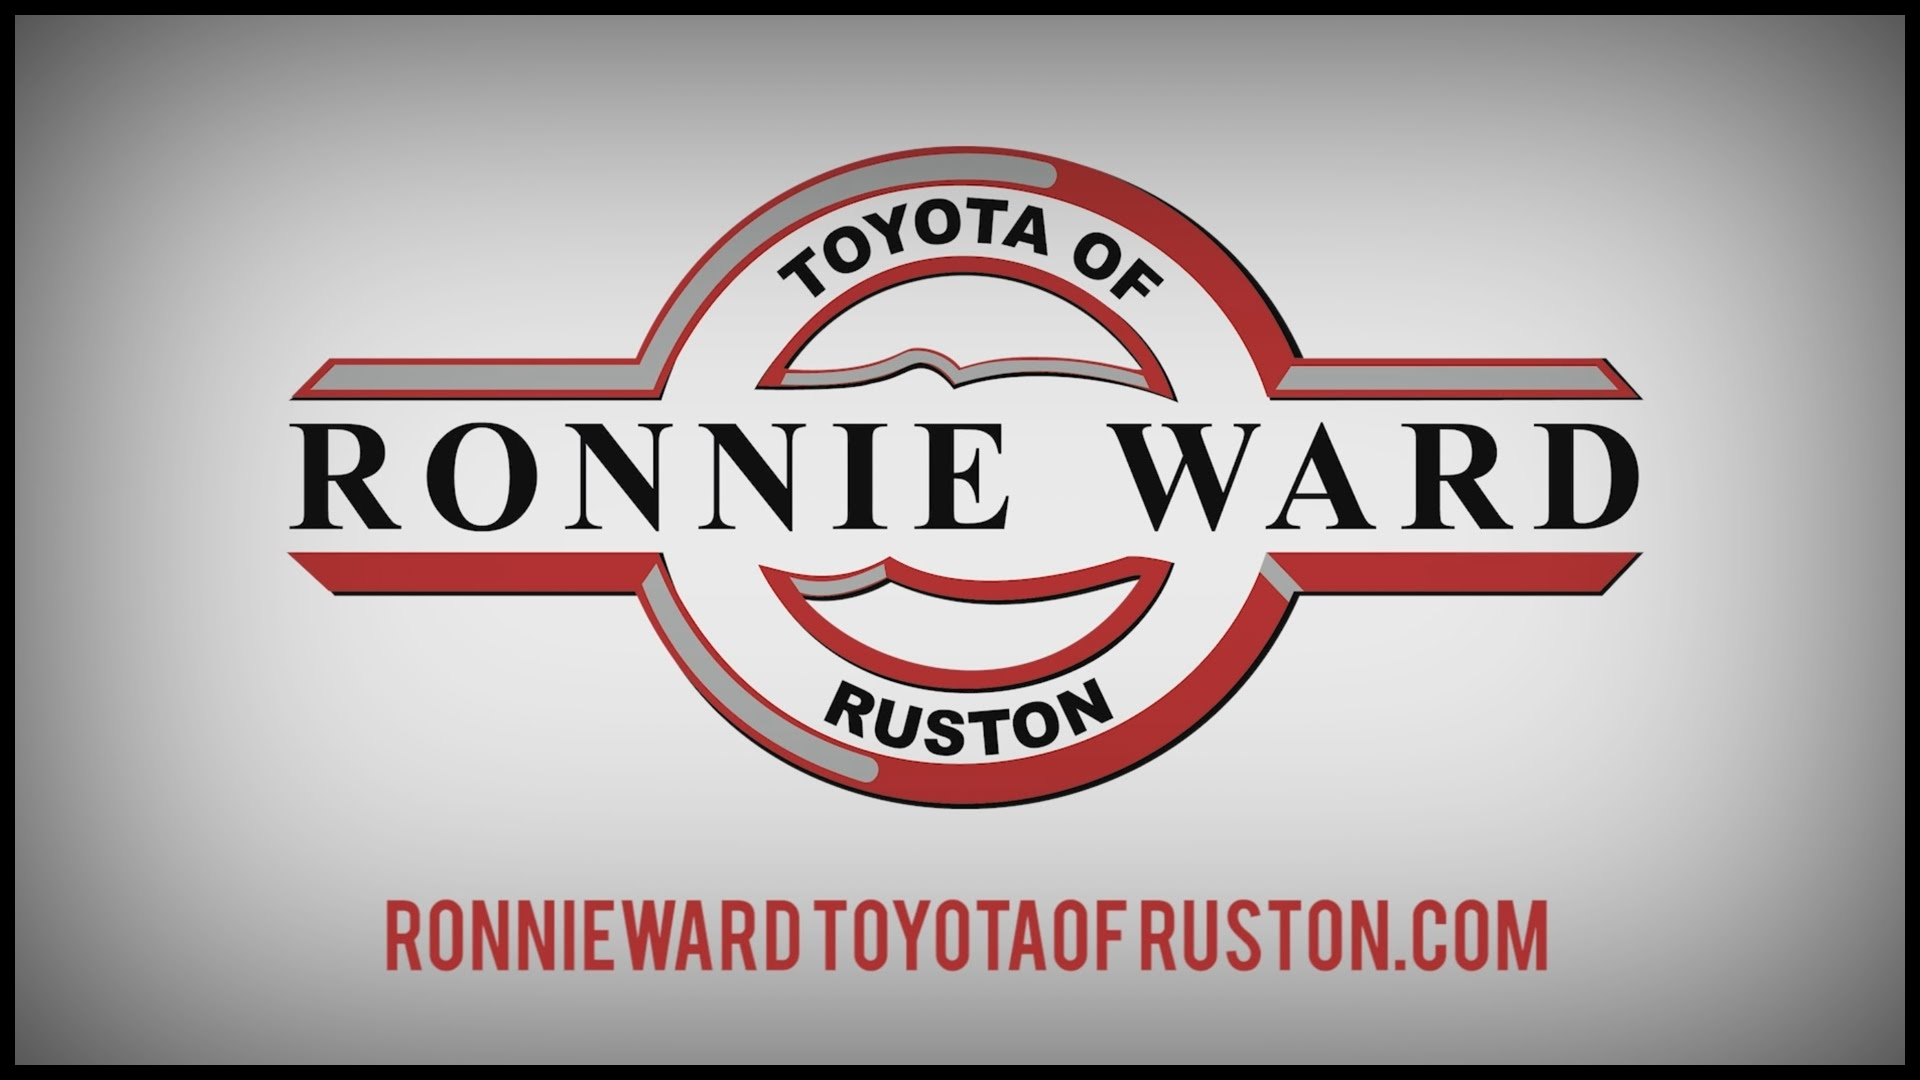 Ronnie Ward Toyota of Ruston Shopping